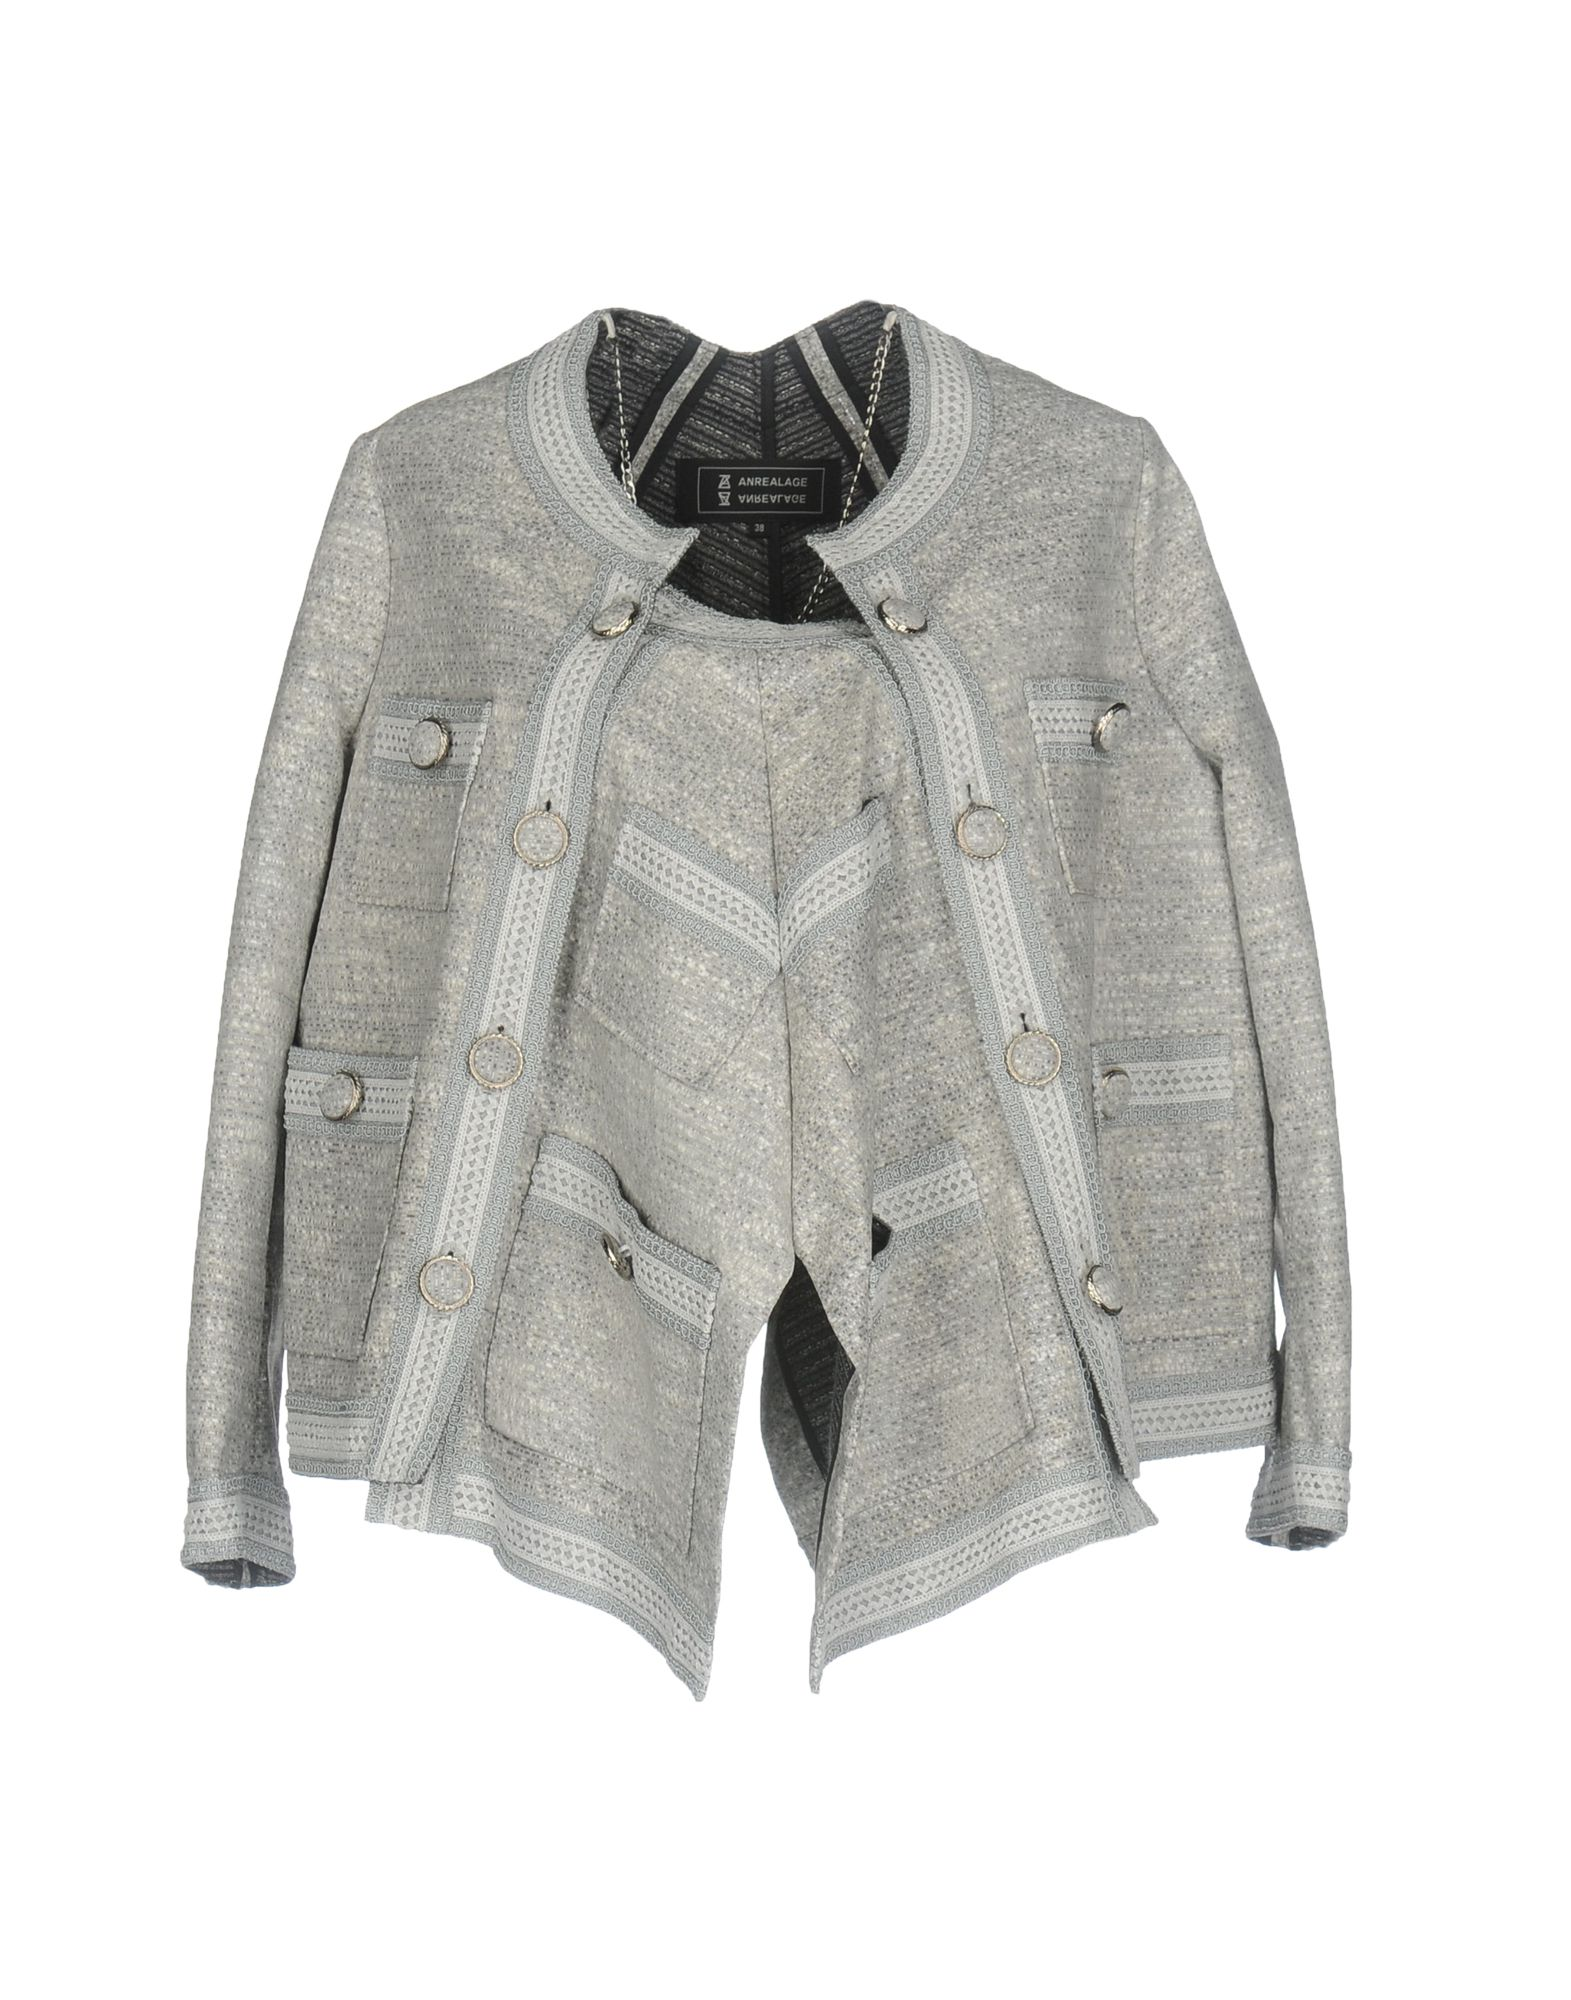 ANREALAGE Double Breasted Pea Coat in Light Grey